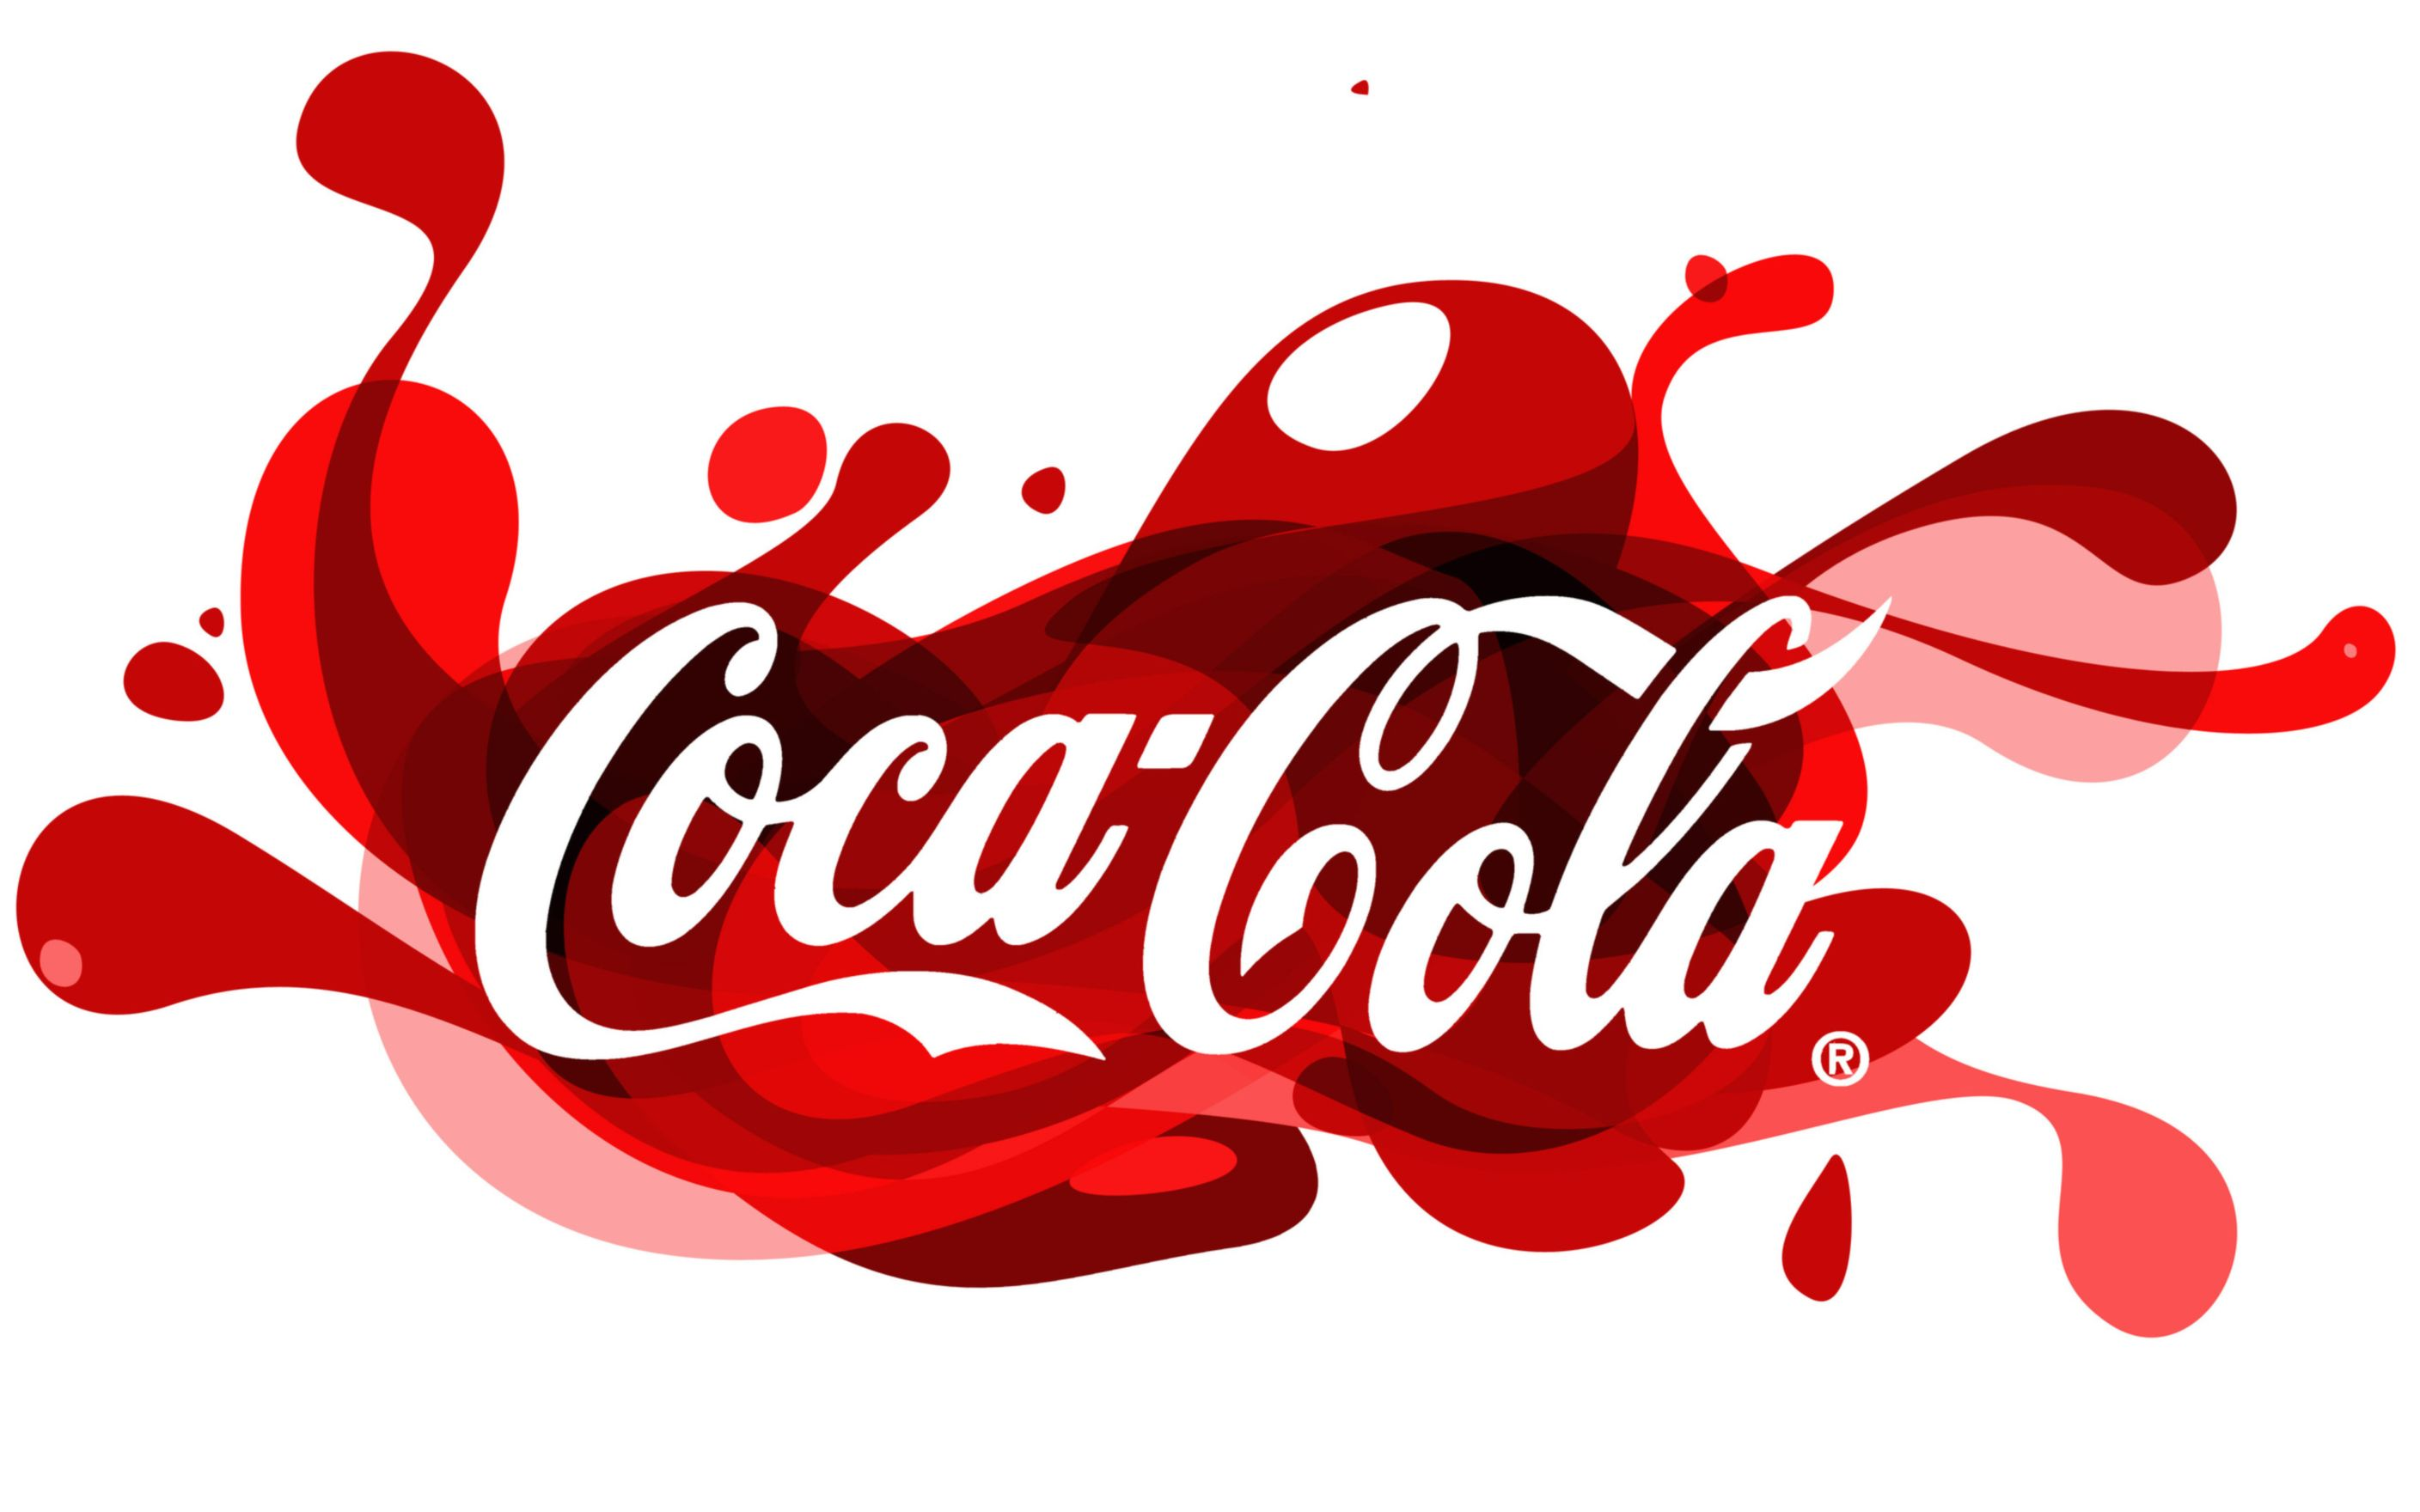 Download free HD Coca Cola Wide Wallpaper, image